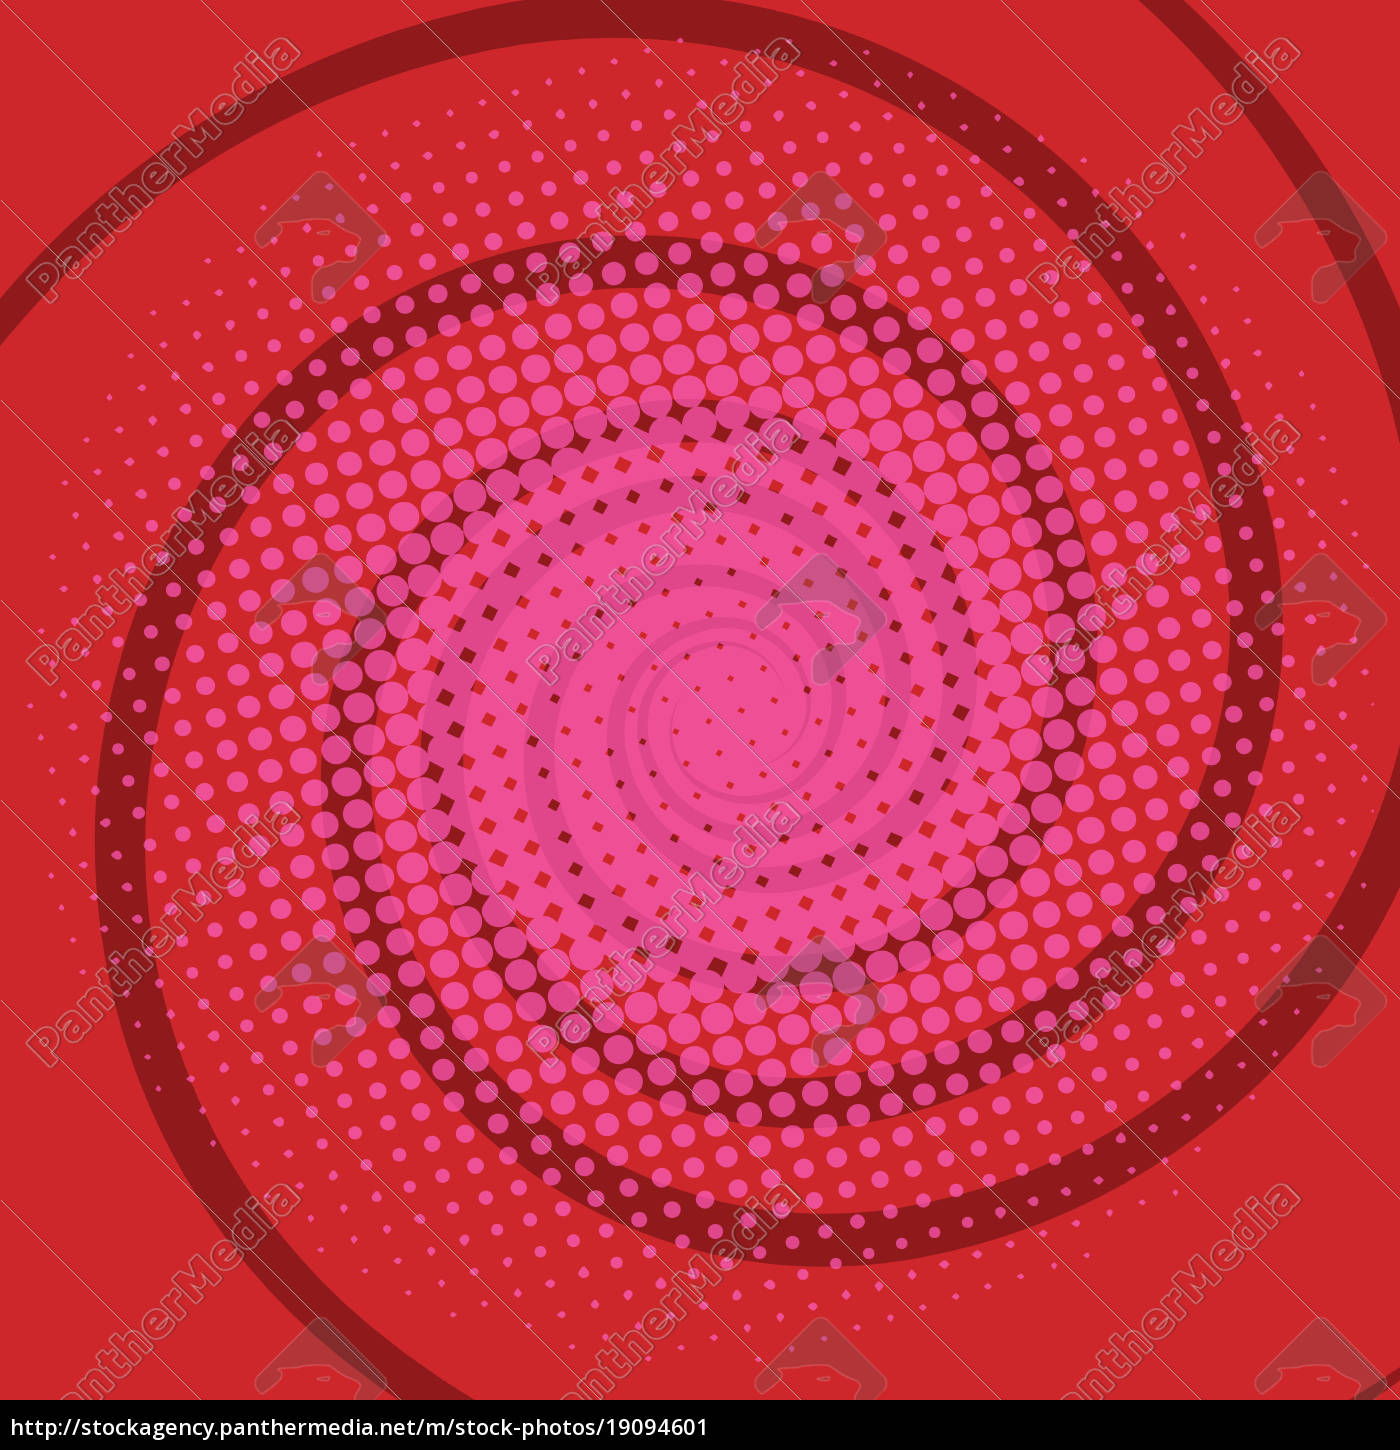 Royalty free image 19094601 - spiral red comics retro background